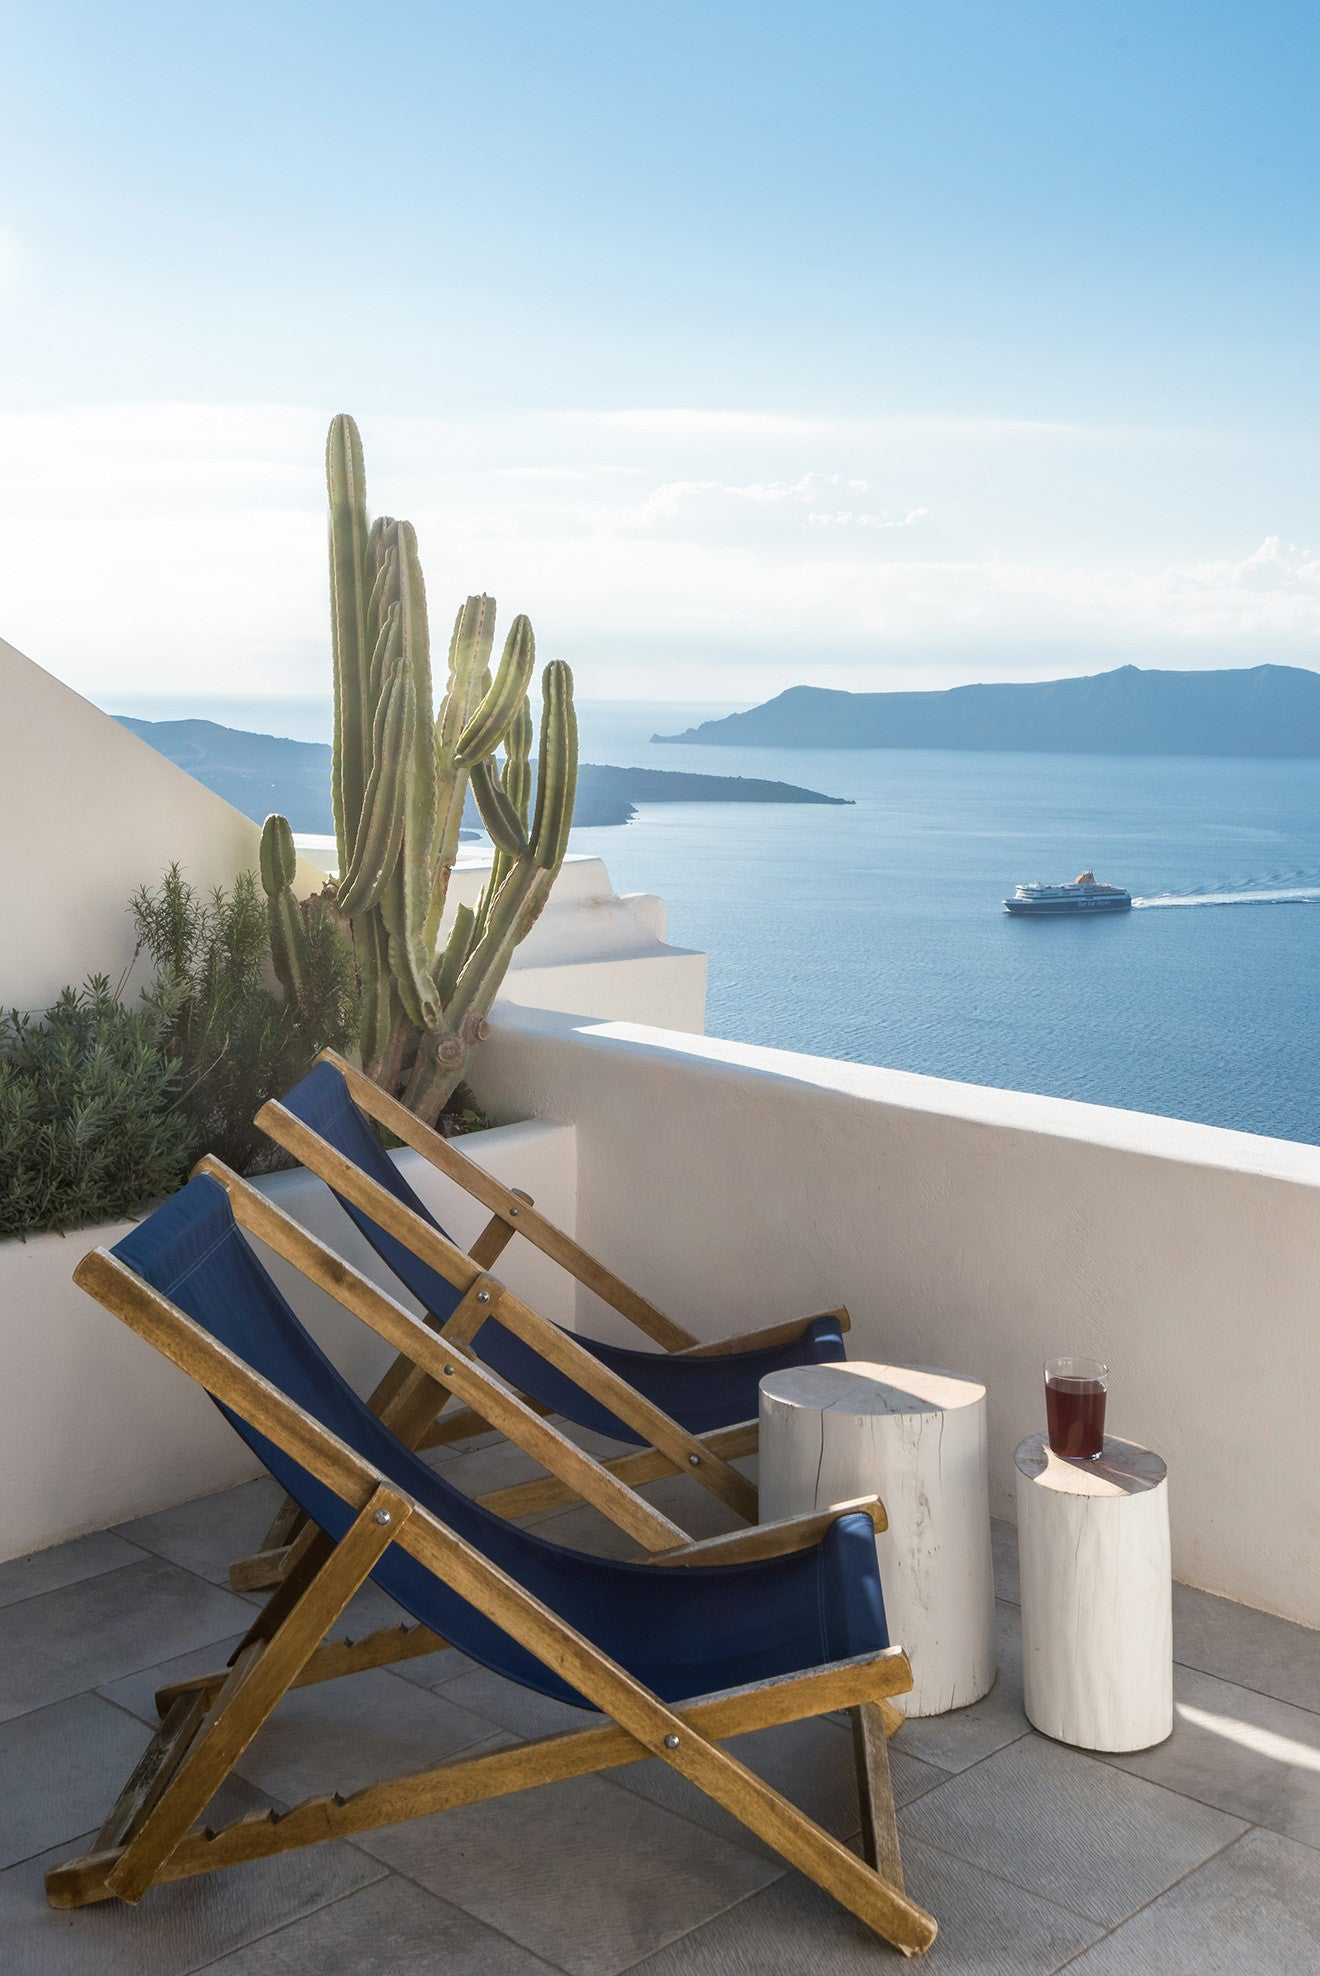 relaxing in a deckchair on a Santorini rooftop - Laboratorium designs the beautiful Porto Fira Suites in Santorini